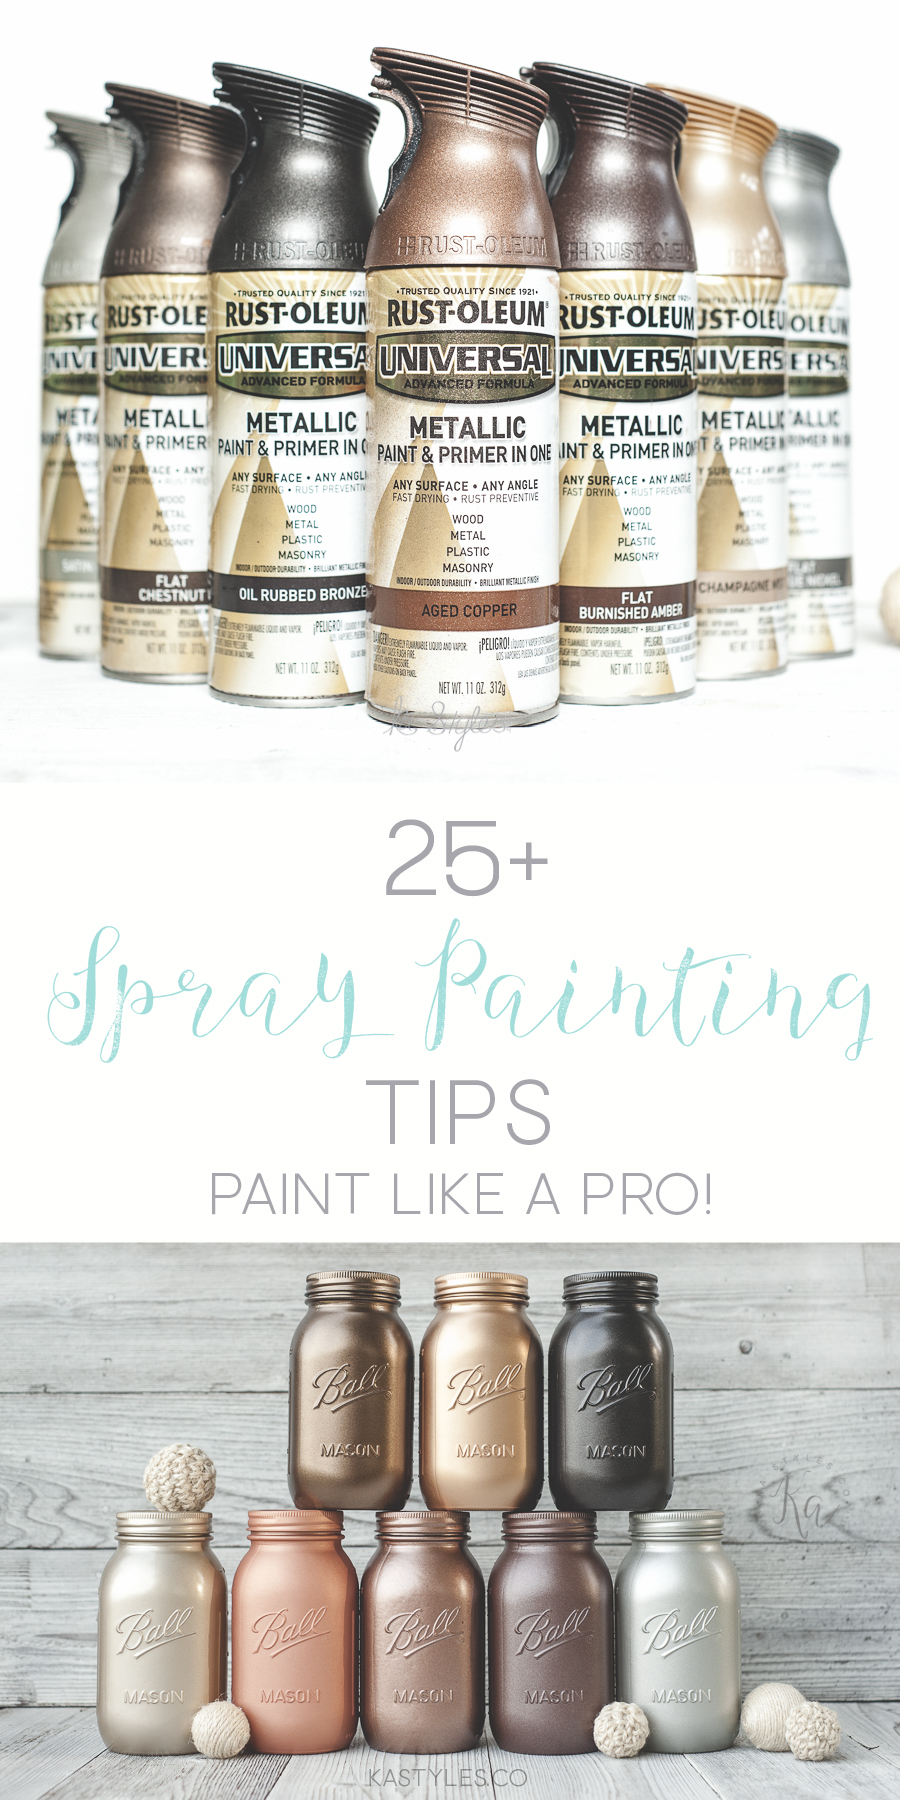 25 Spray Painting Tips Sprinkled And Painted At Ka Styles Co